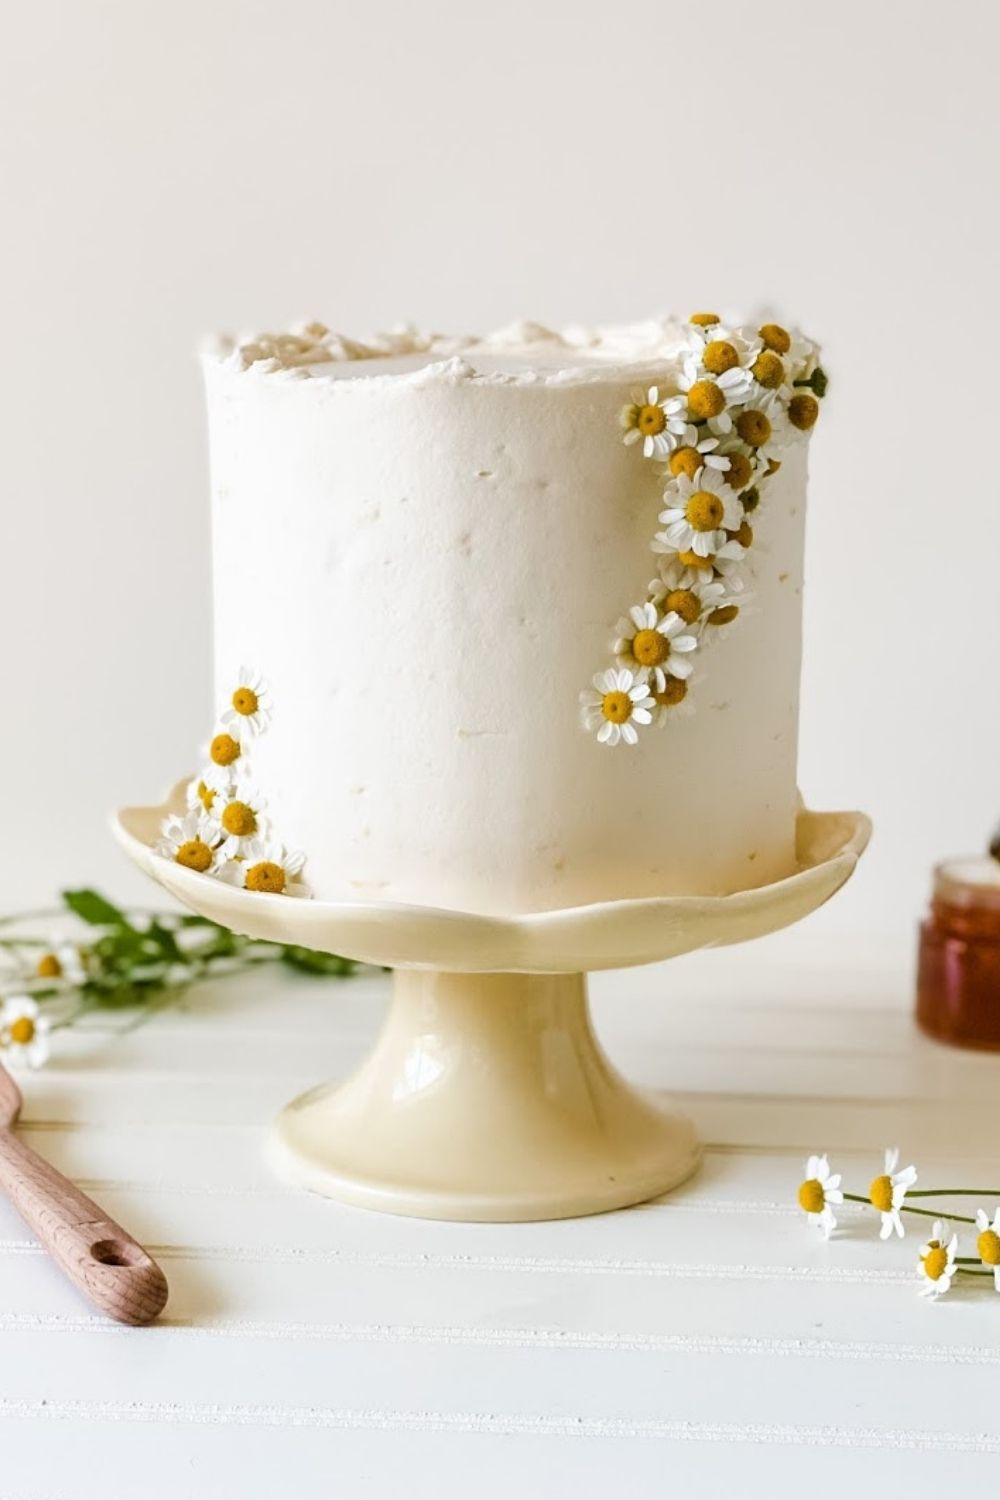 I'm sharing the three ways I make money online as a home baker and how you can too! You can earn an extra $1,000 to $3,000 a month decorating cakes by starting a home baking business. Learn these three ways you can make money online as a cake decorator. Created by Katie Rosario, XOKatieRosario creates beautiful cake decorating techniques that are easy for beginners for any home baker. #xokatierosario #katierosariocakes #makingmoney #homebaking #homebaker